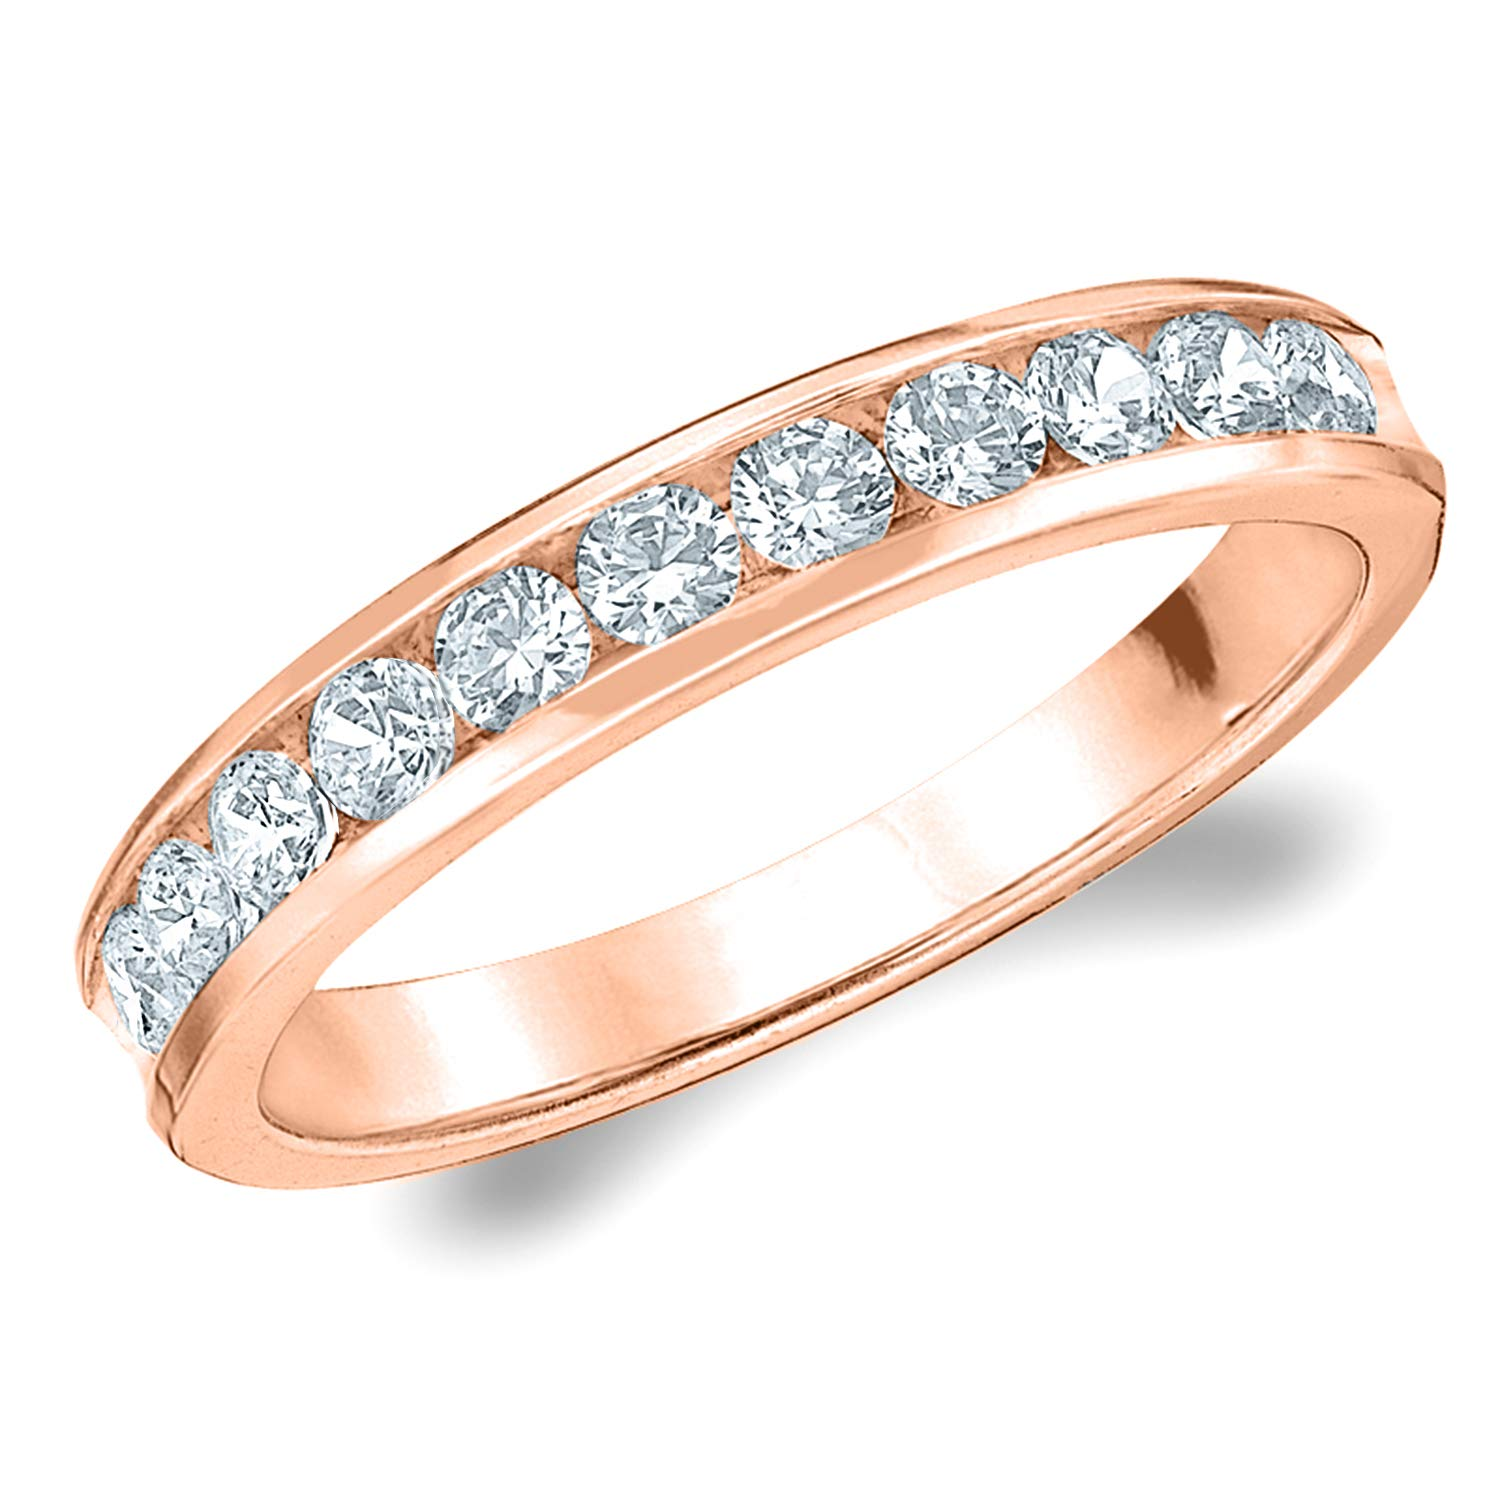 .50CT Symphony Channel Set Diamond Wedding Ring in 10K Rose Gold - Finger Size 6.5 by Eternity Wedding Bands